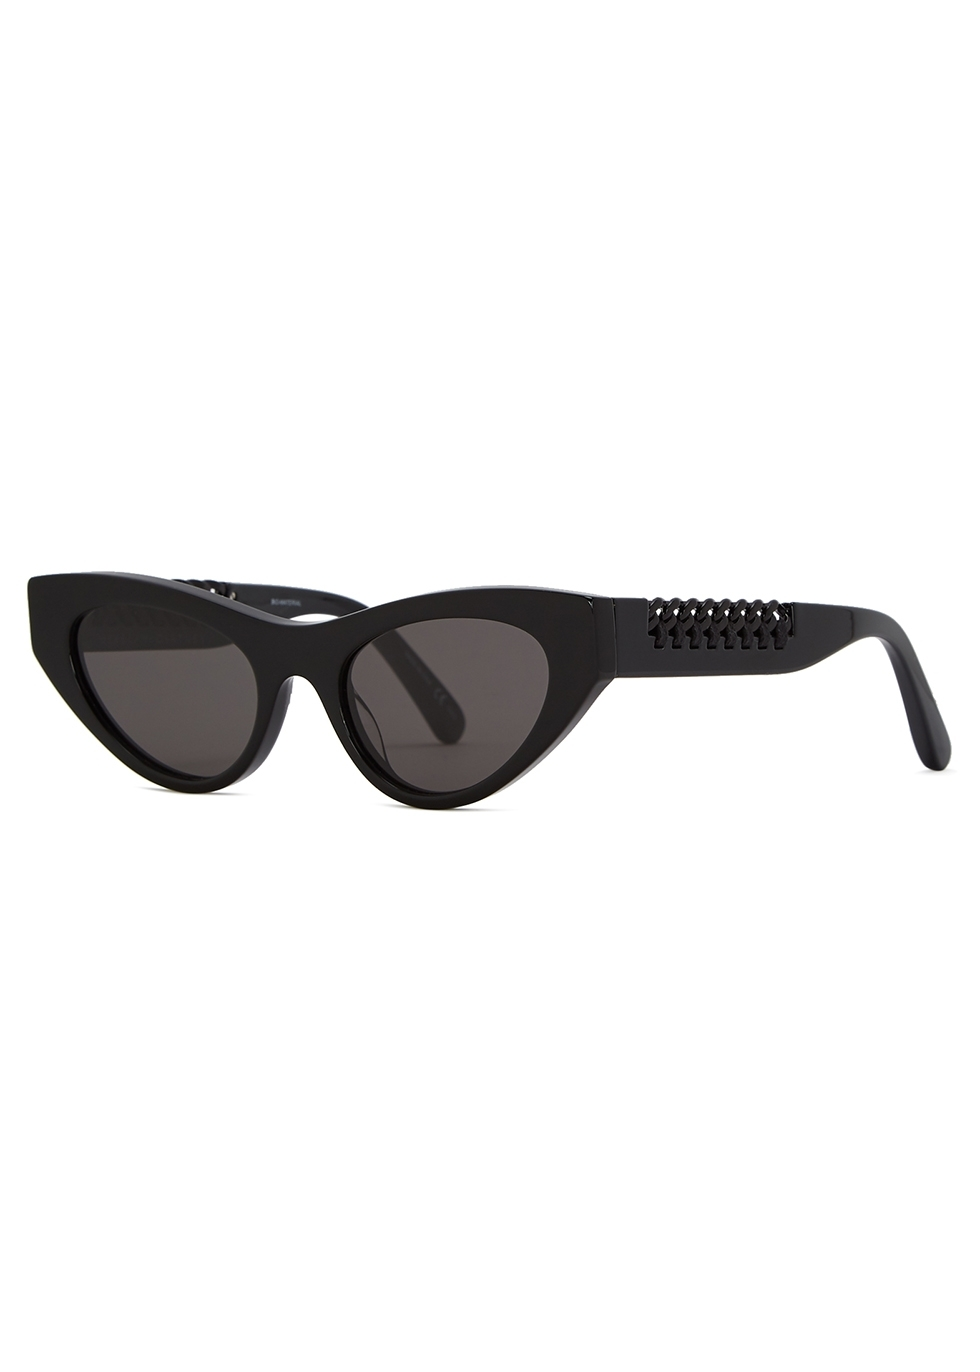 c199b4b6c Women's Designer Sunglasses and Eyewear - Harvey Nichols